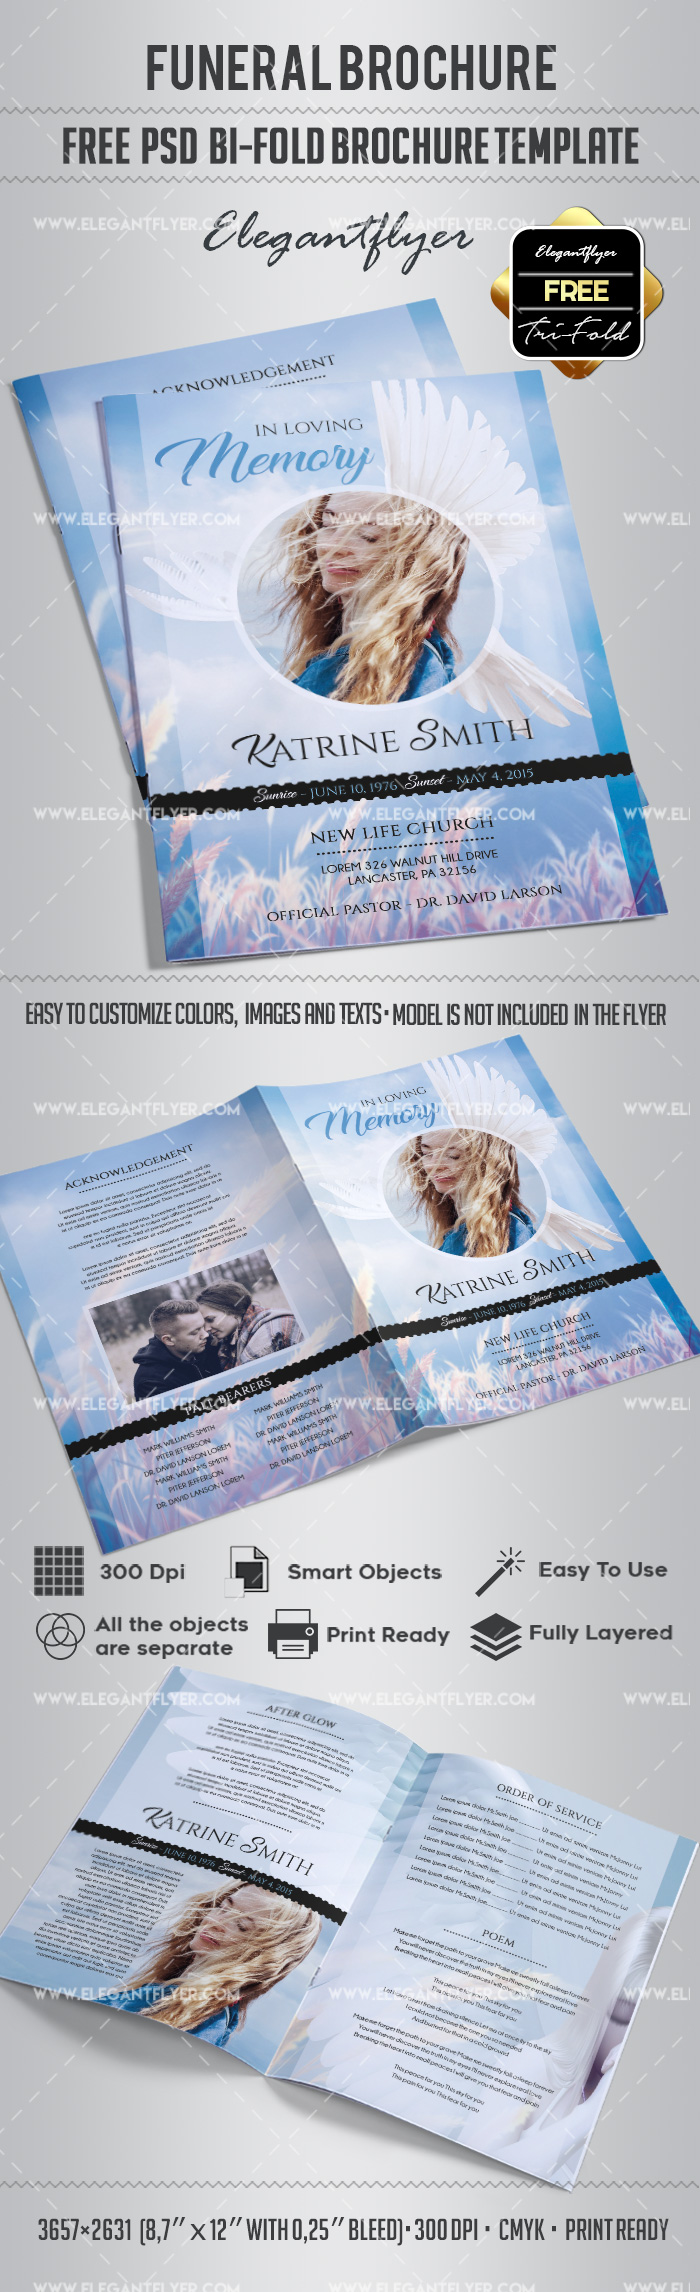 brochure photoshop template - free funeral bi fold brochure by elegantflyer